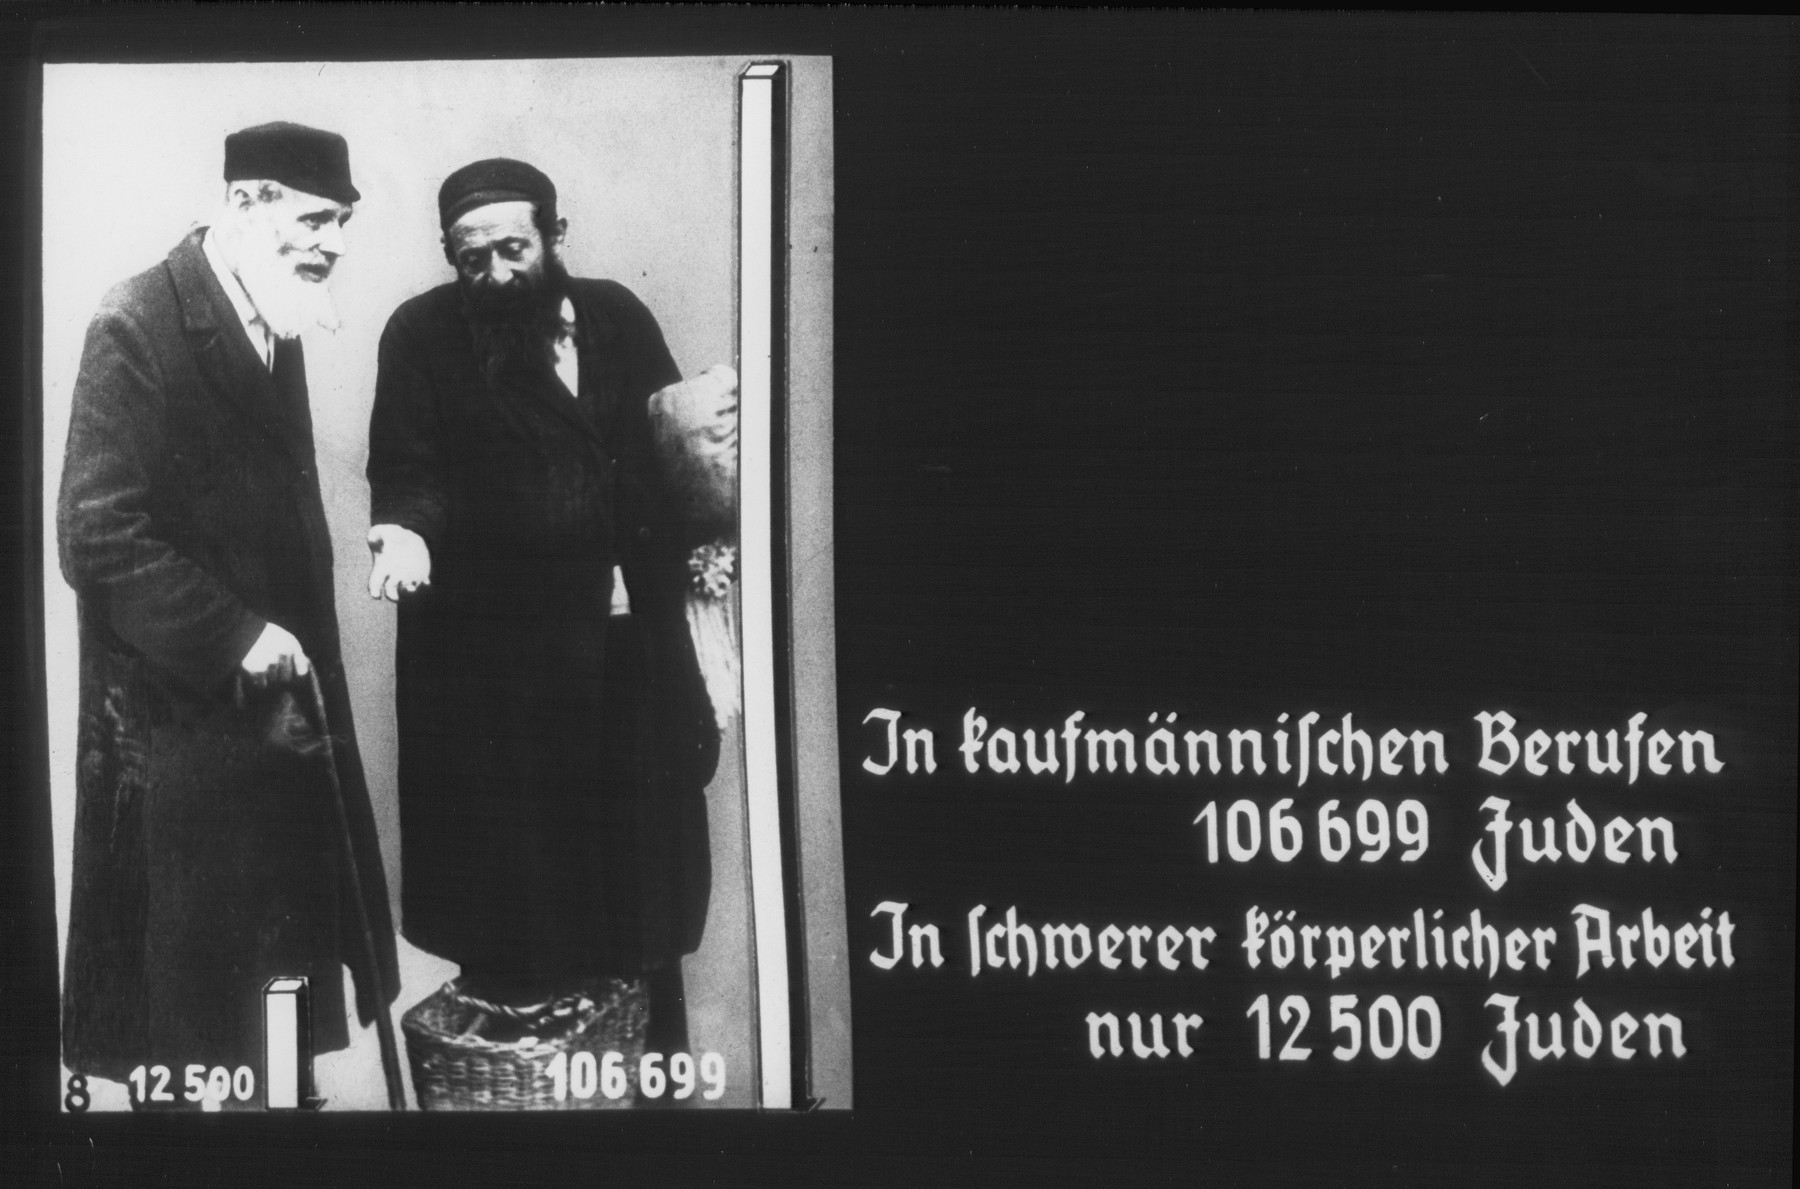 """Propaganda slide entitled """"In commercial trades there are 106,699 Jews; In heavy, physical work, only 12,500 Jews."""""""